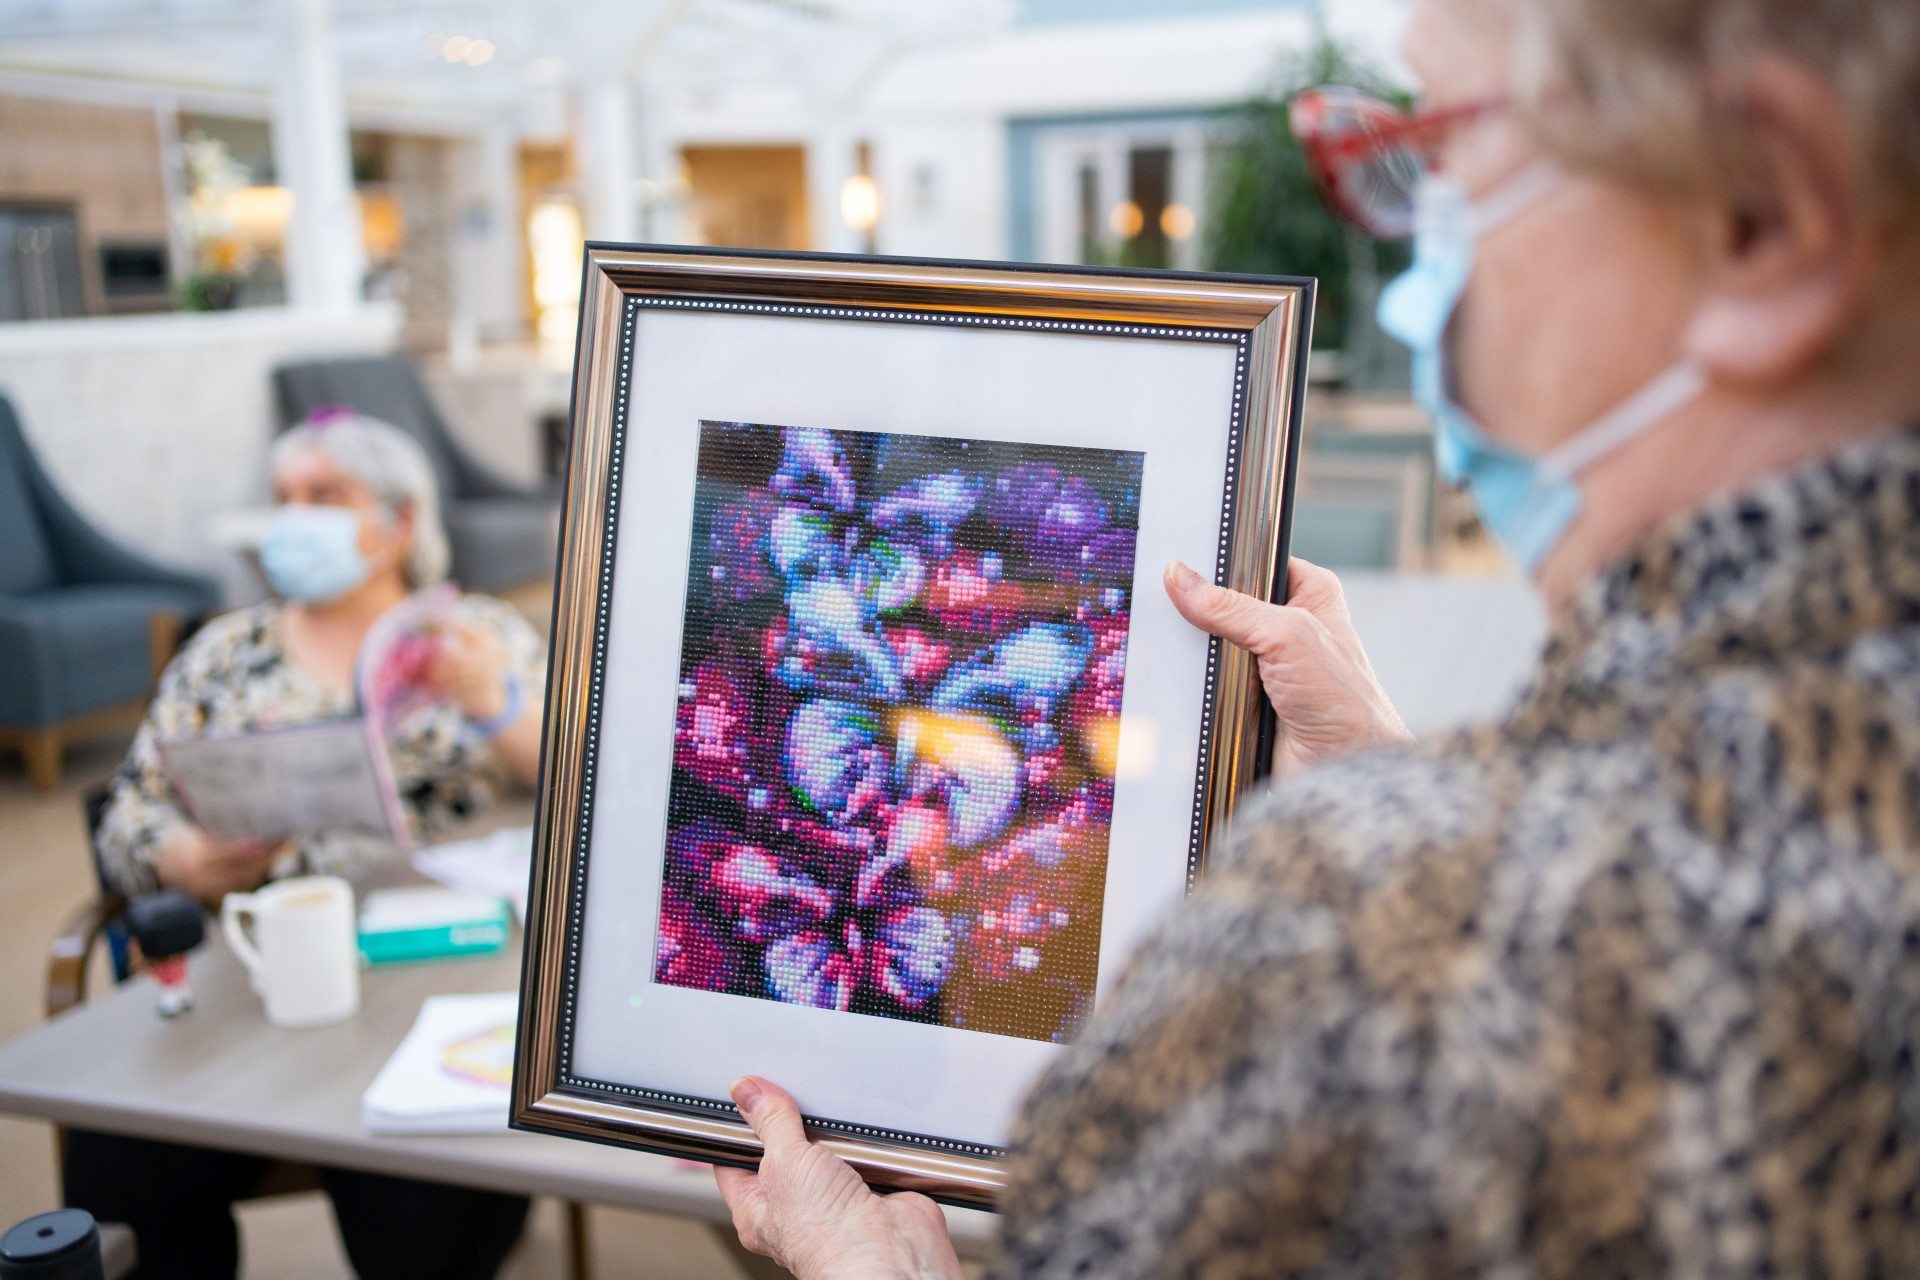 Resident-created artwork at Spruce community